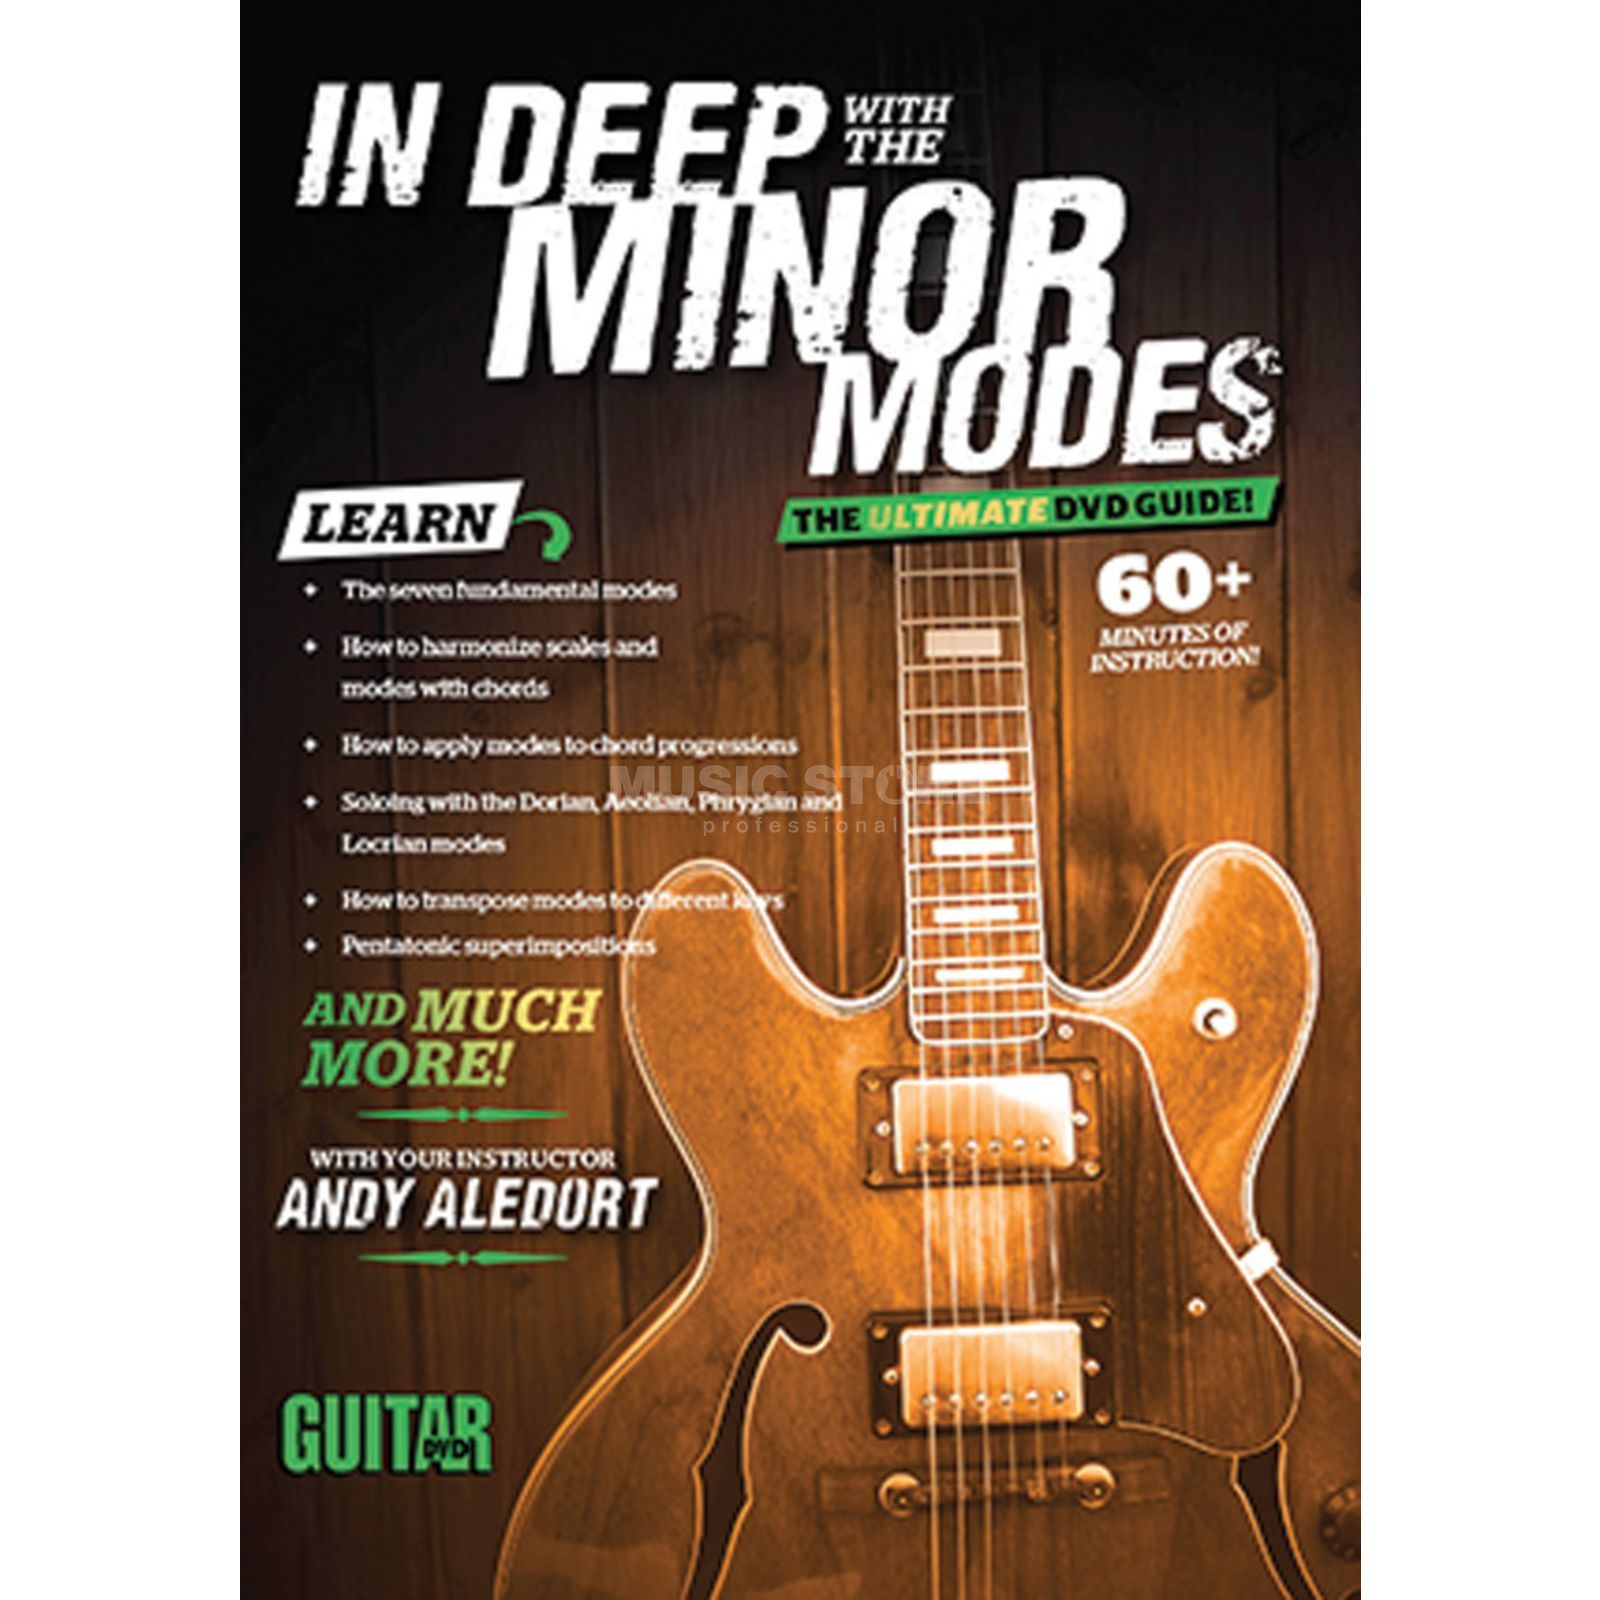 Alfred Music Guitar World: In Deep with the Minor Modes Produktbild